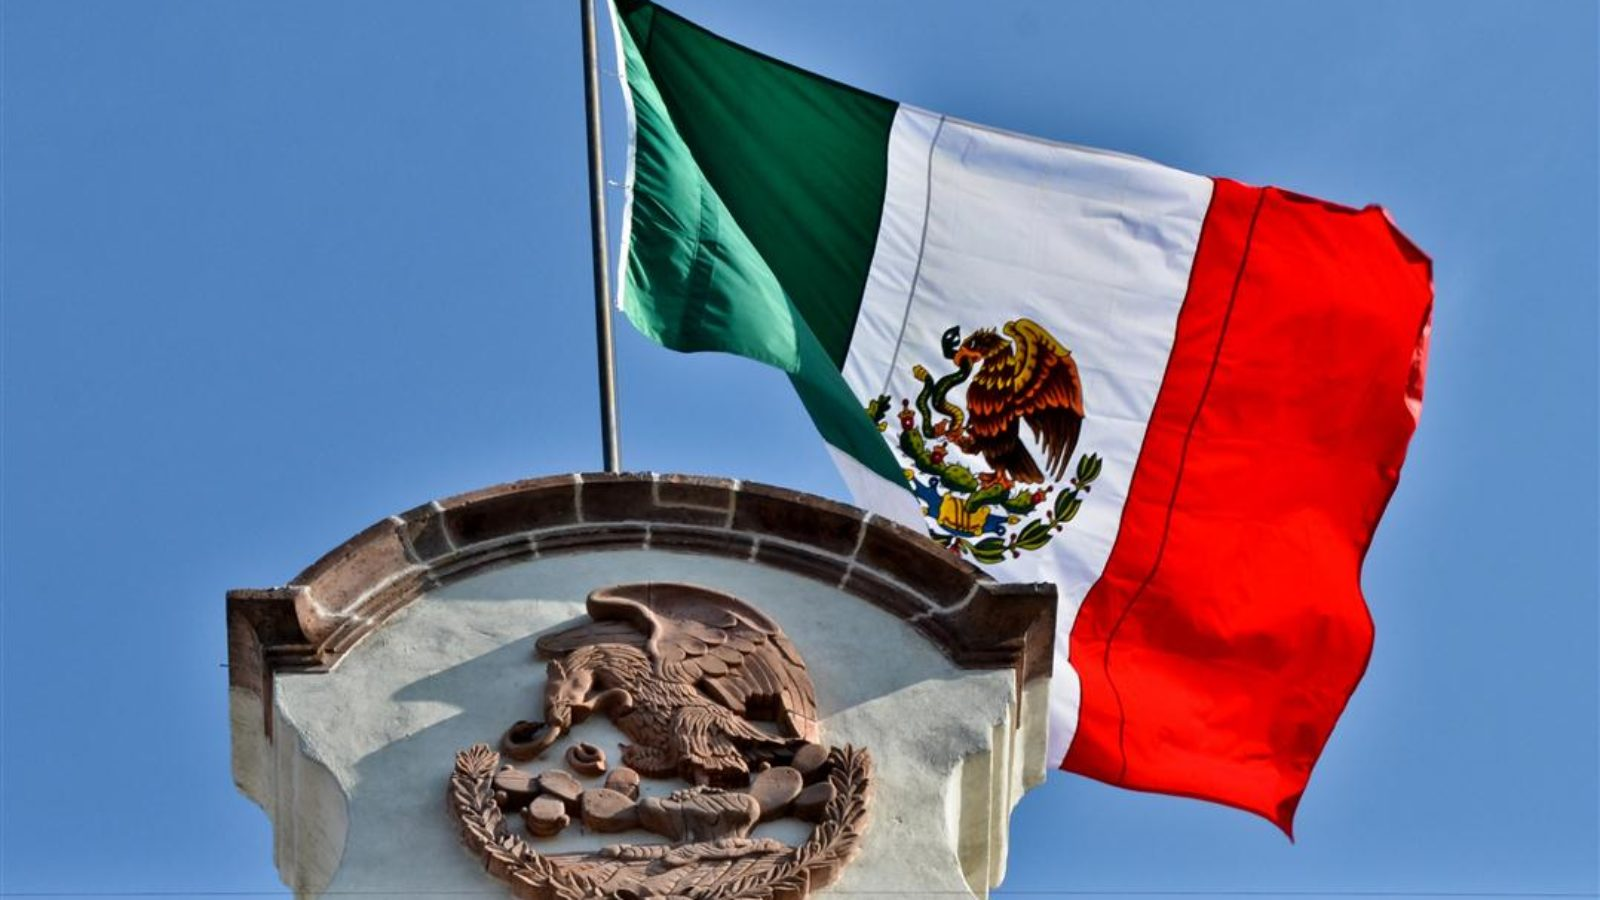 The Mexican flag on top of a building